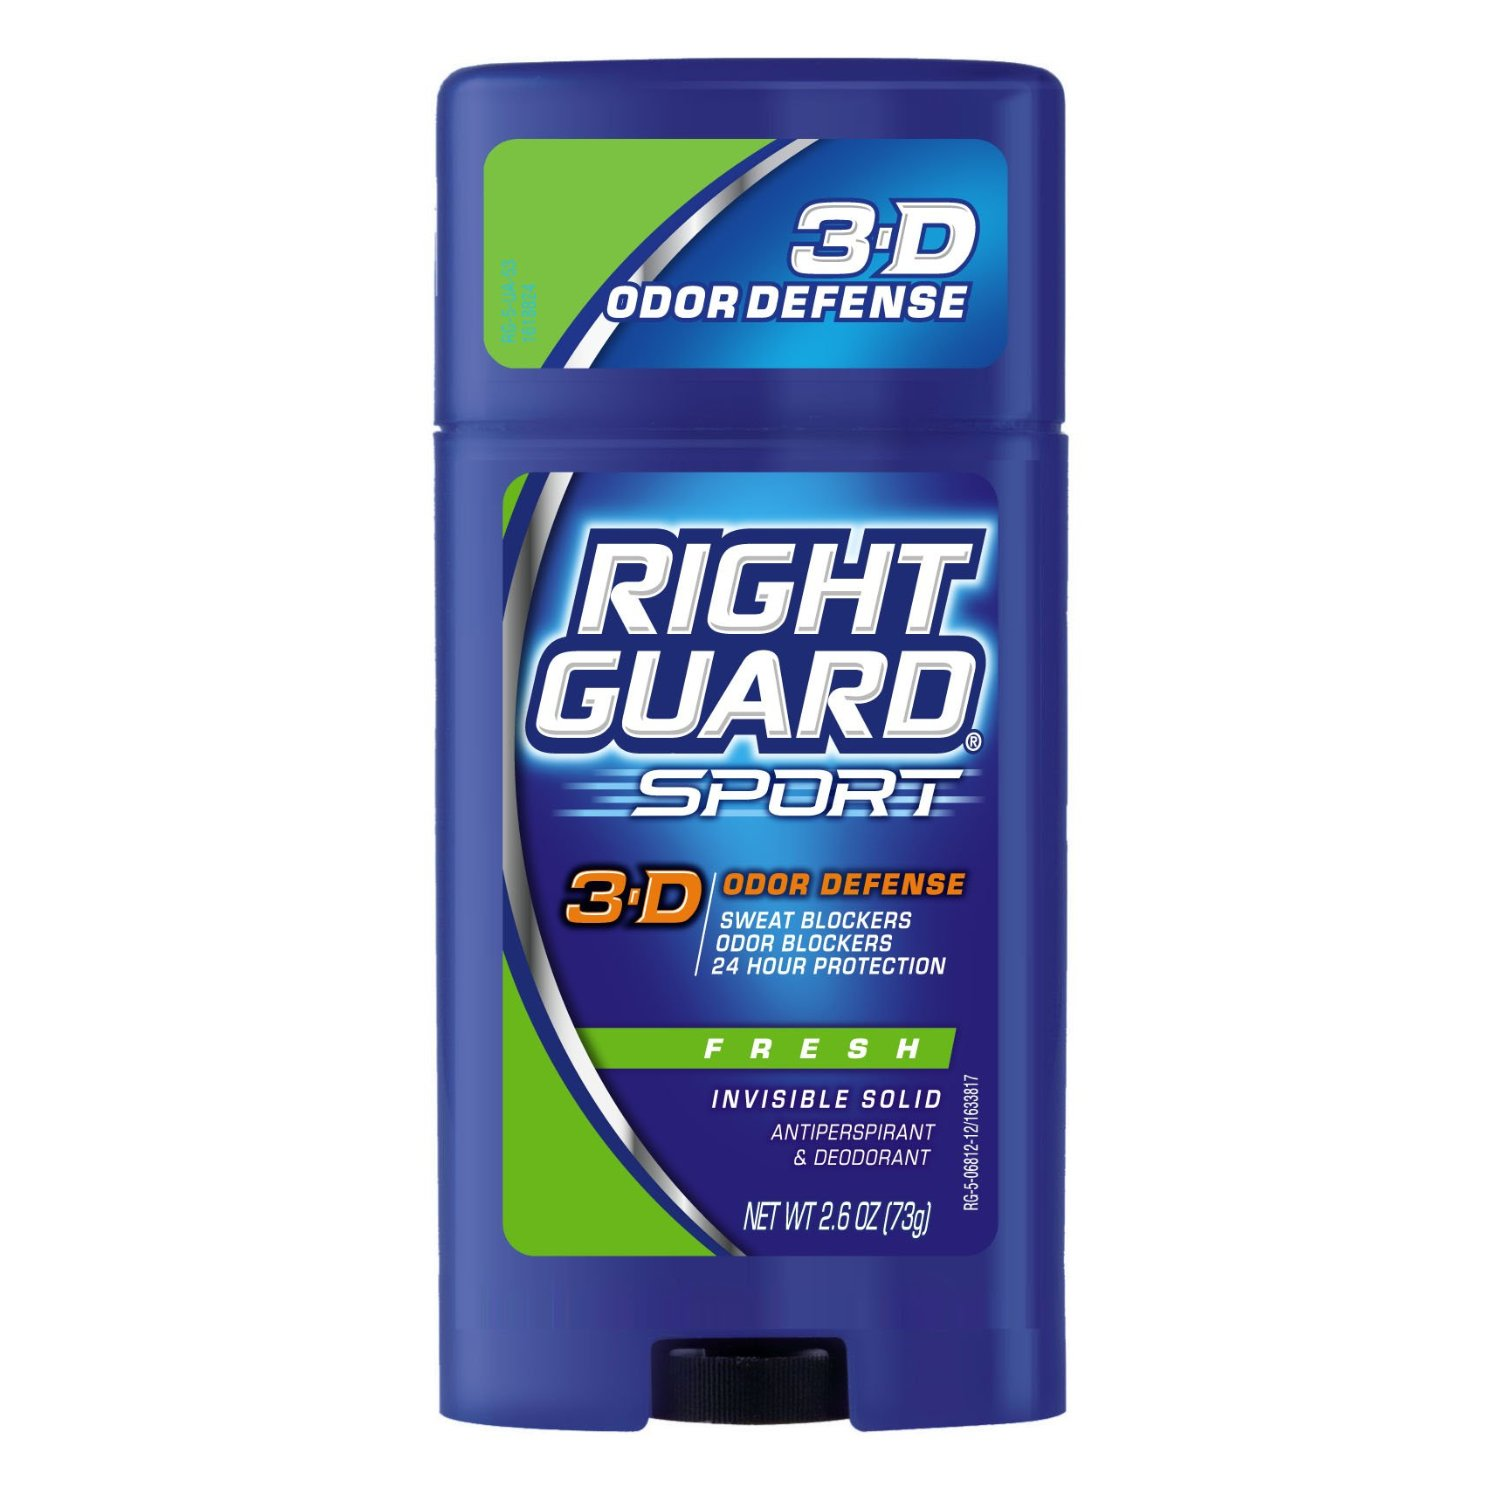 Right Guard Deodorant Only $.44 at Walgreens!